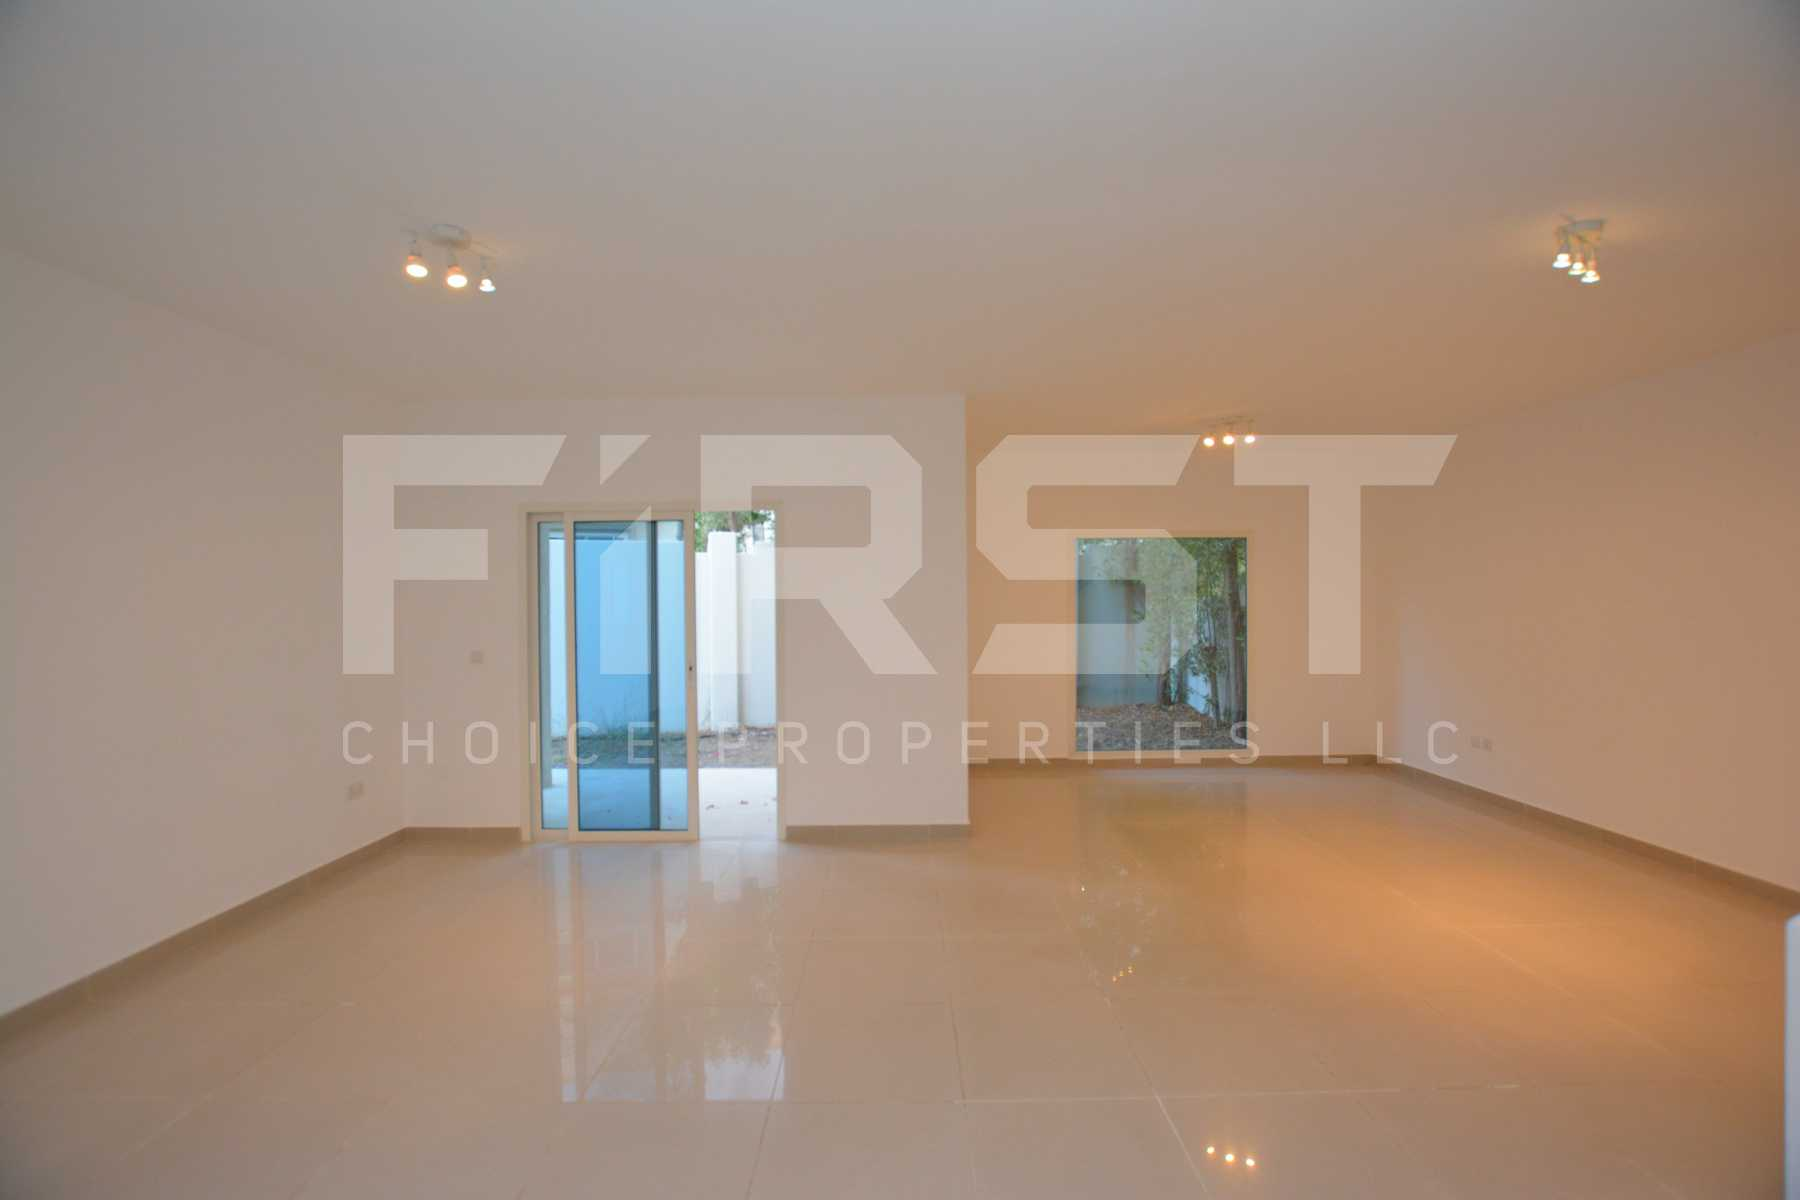 Internal Photo of 5 Bedroom Villa in Al Reef Villas 348.3 sq.m 3749 sq.ft (116).jpg